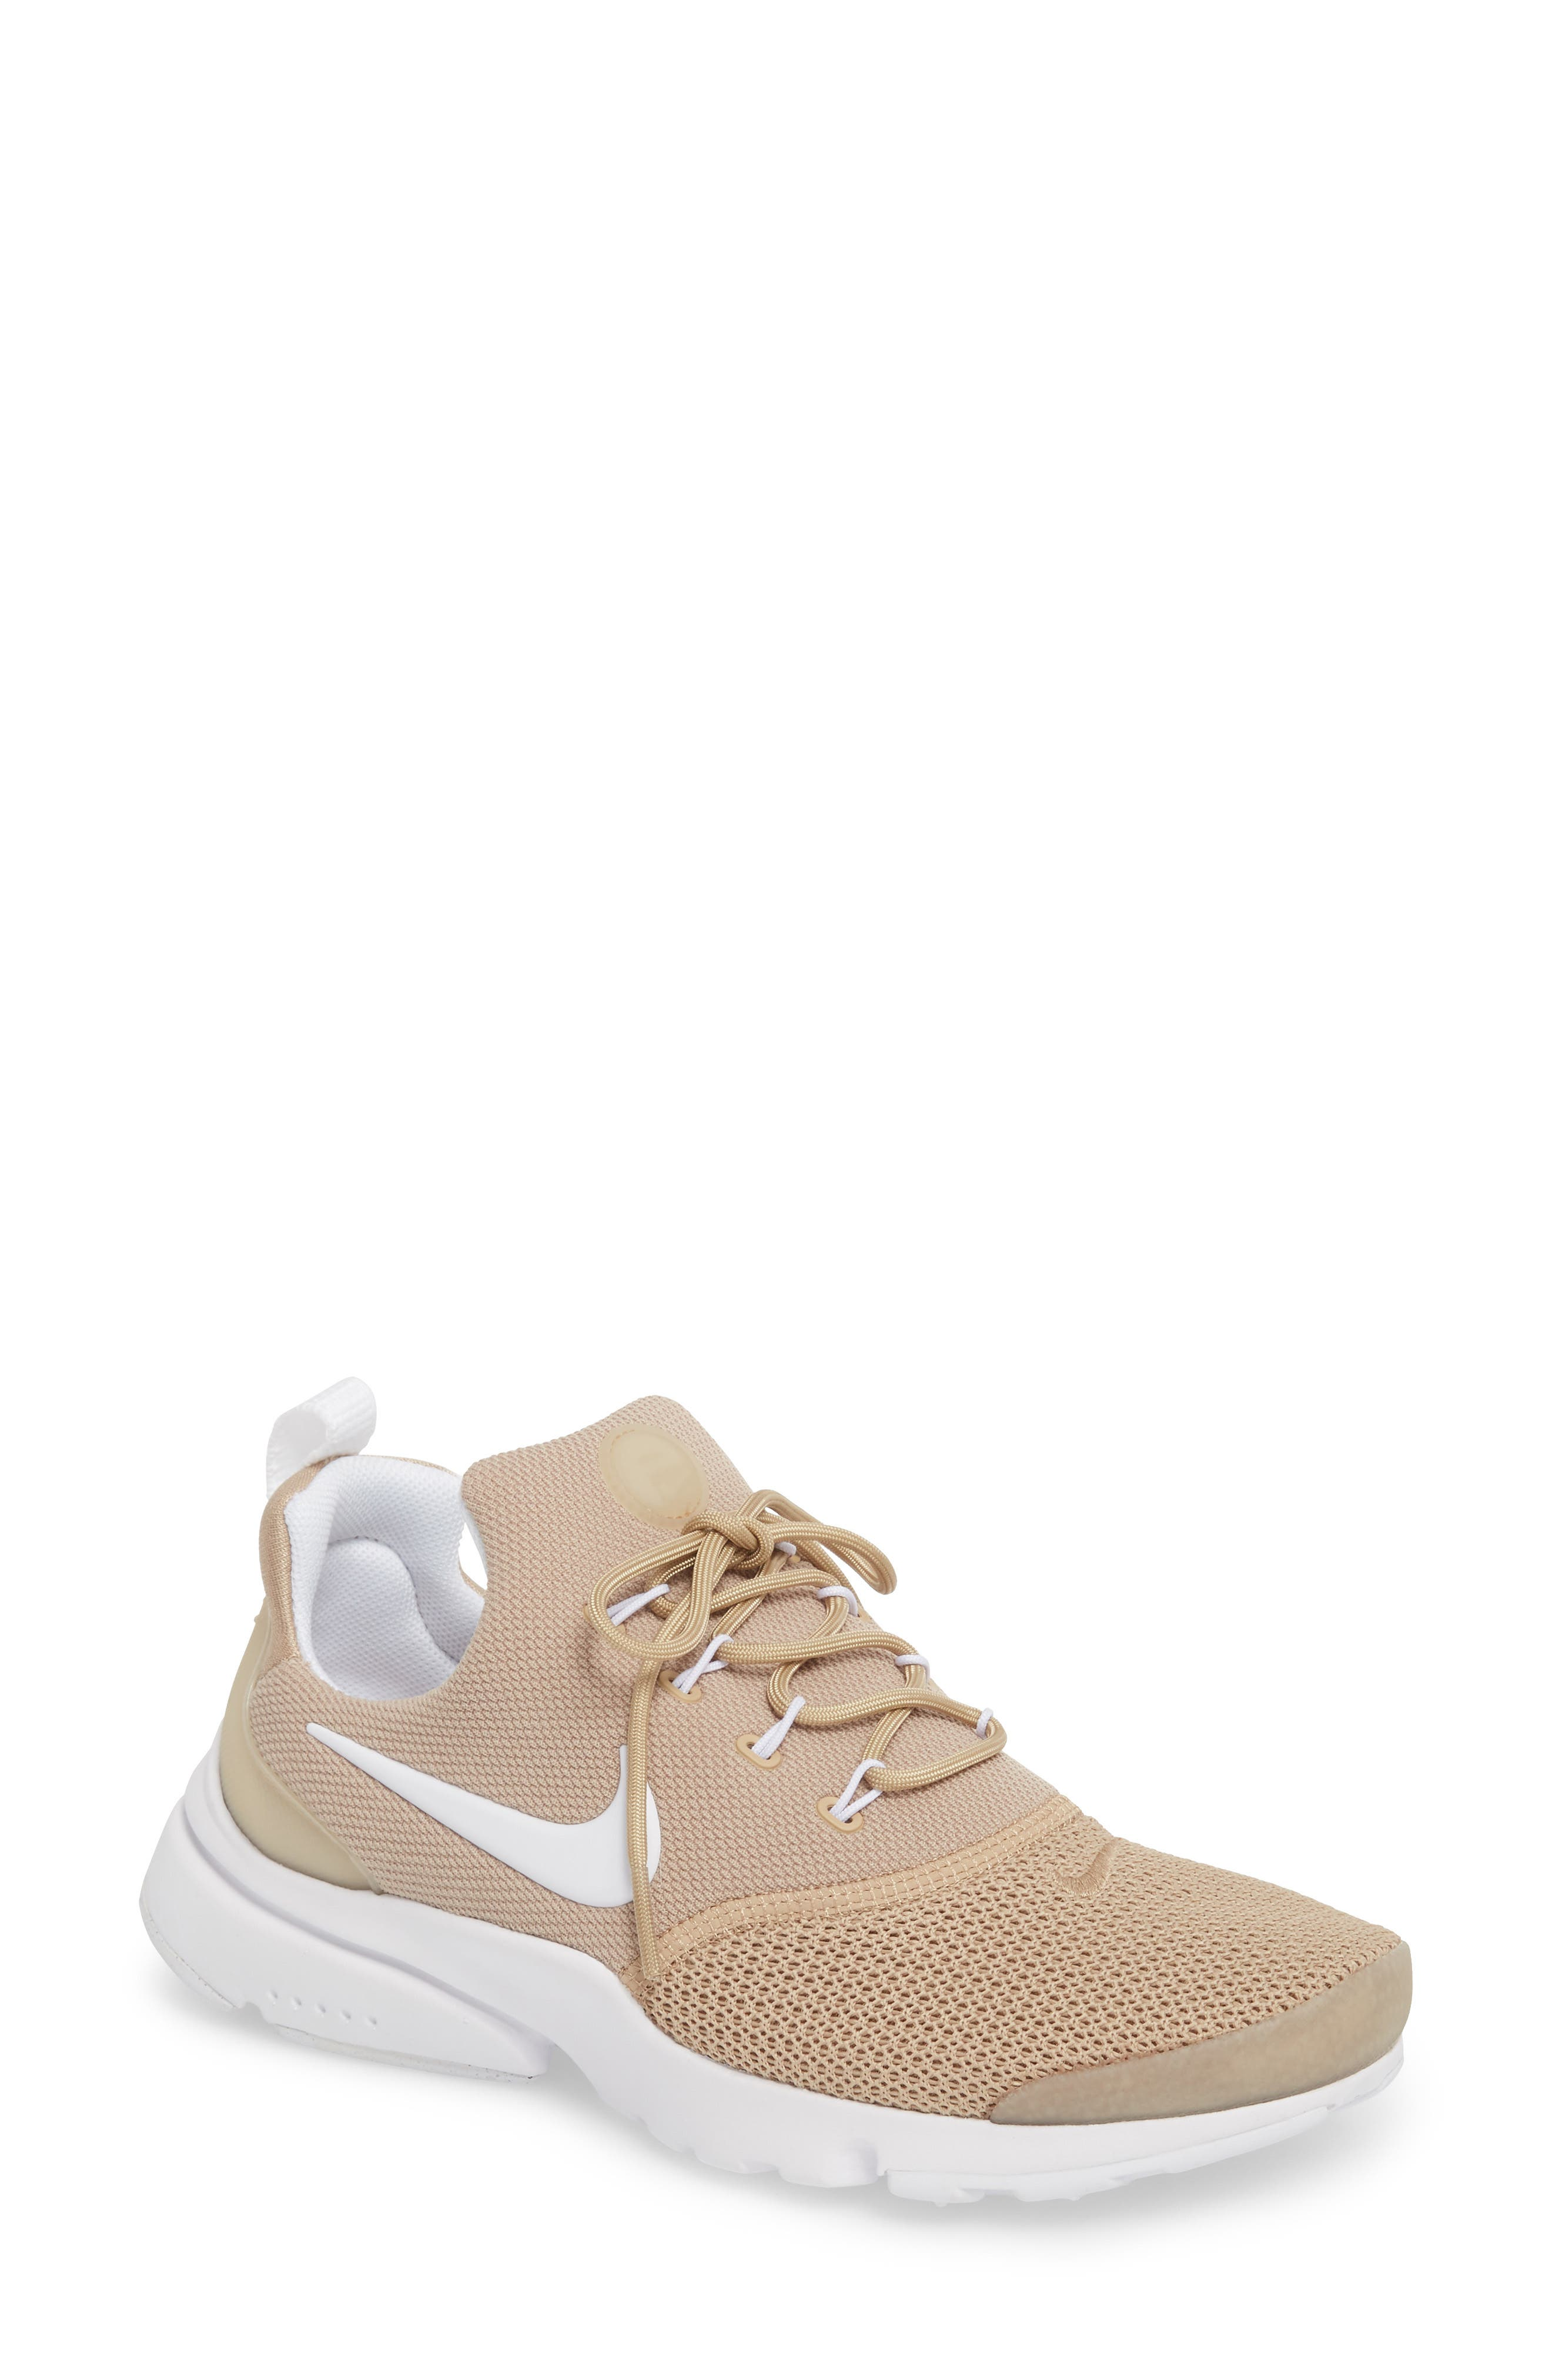 Presto Fly Sneaker,                             Main thumbnail 1, color,                             Sand/ White